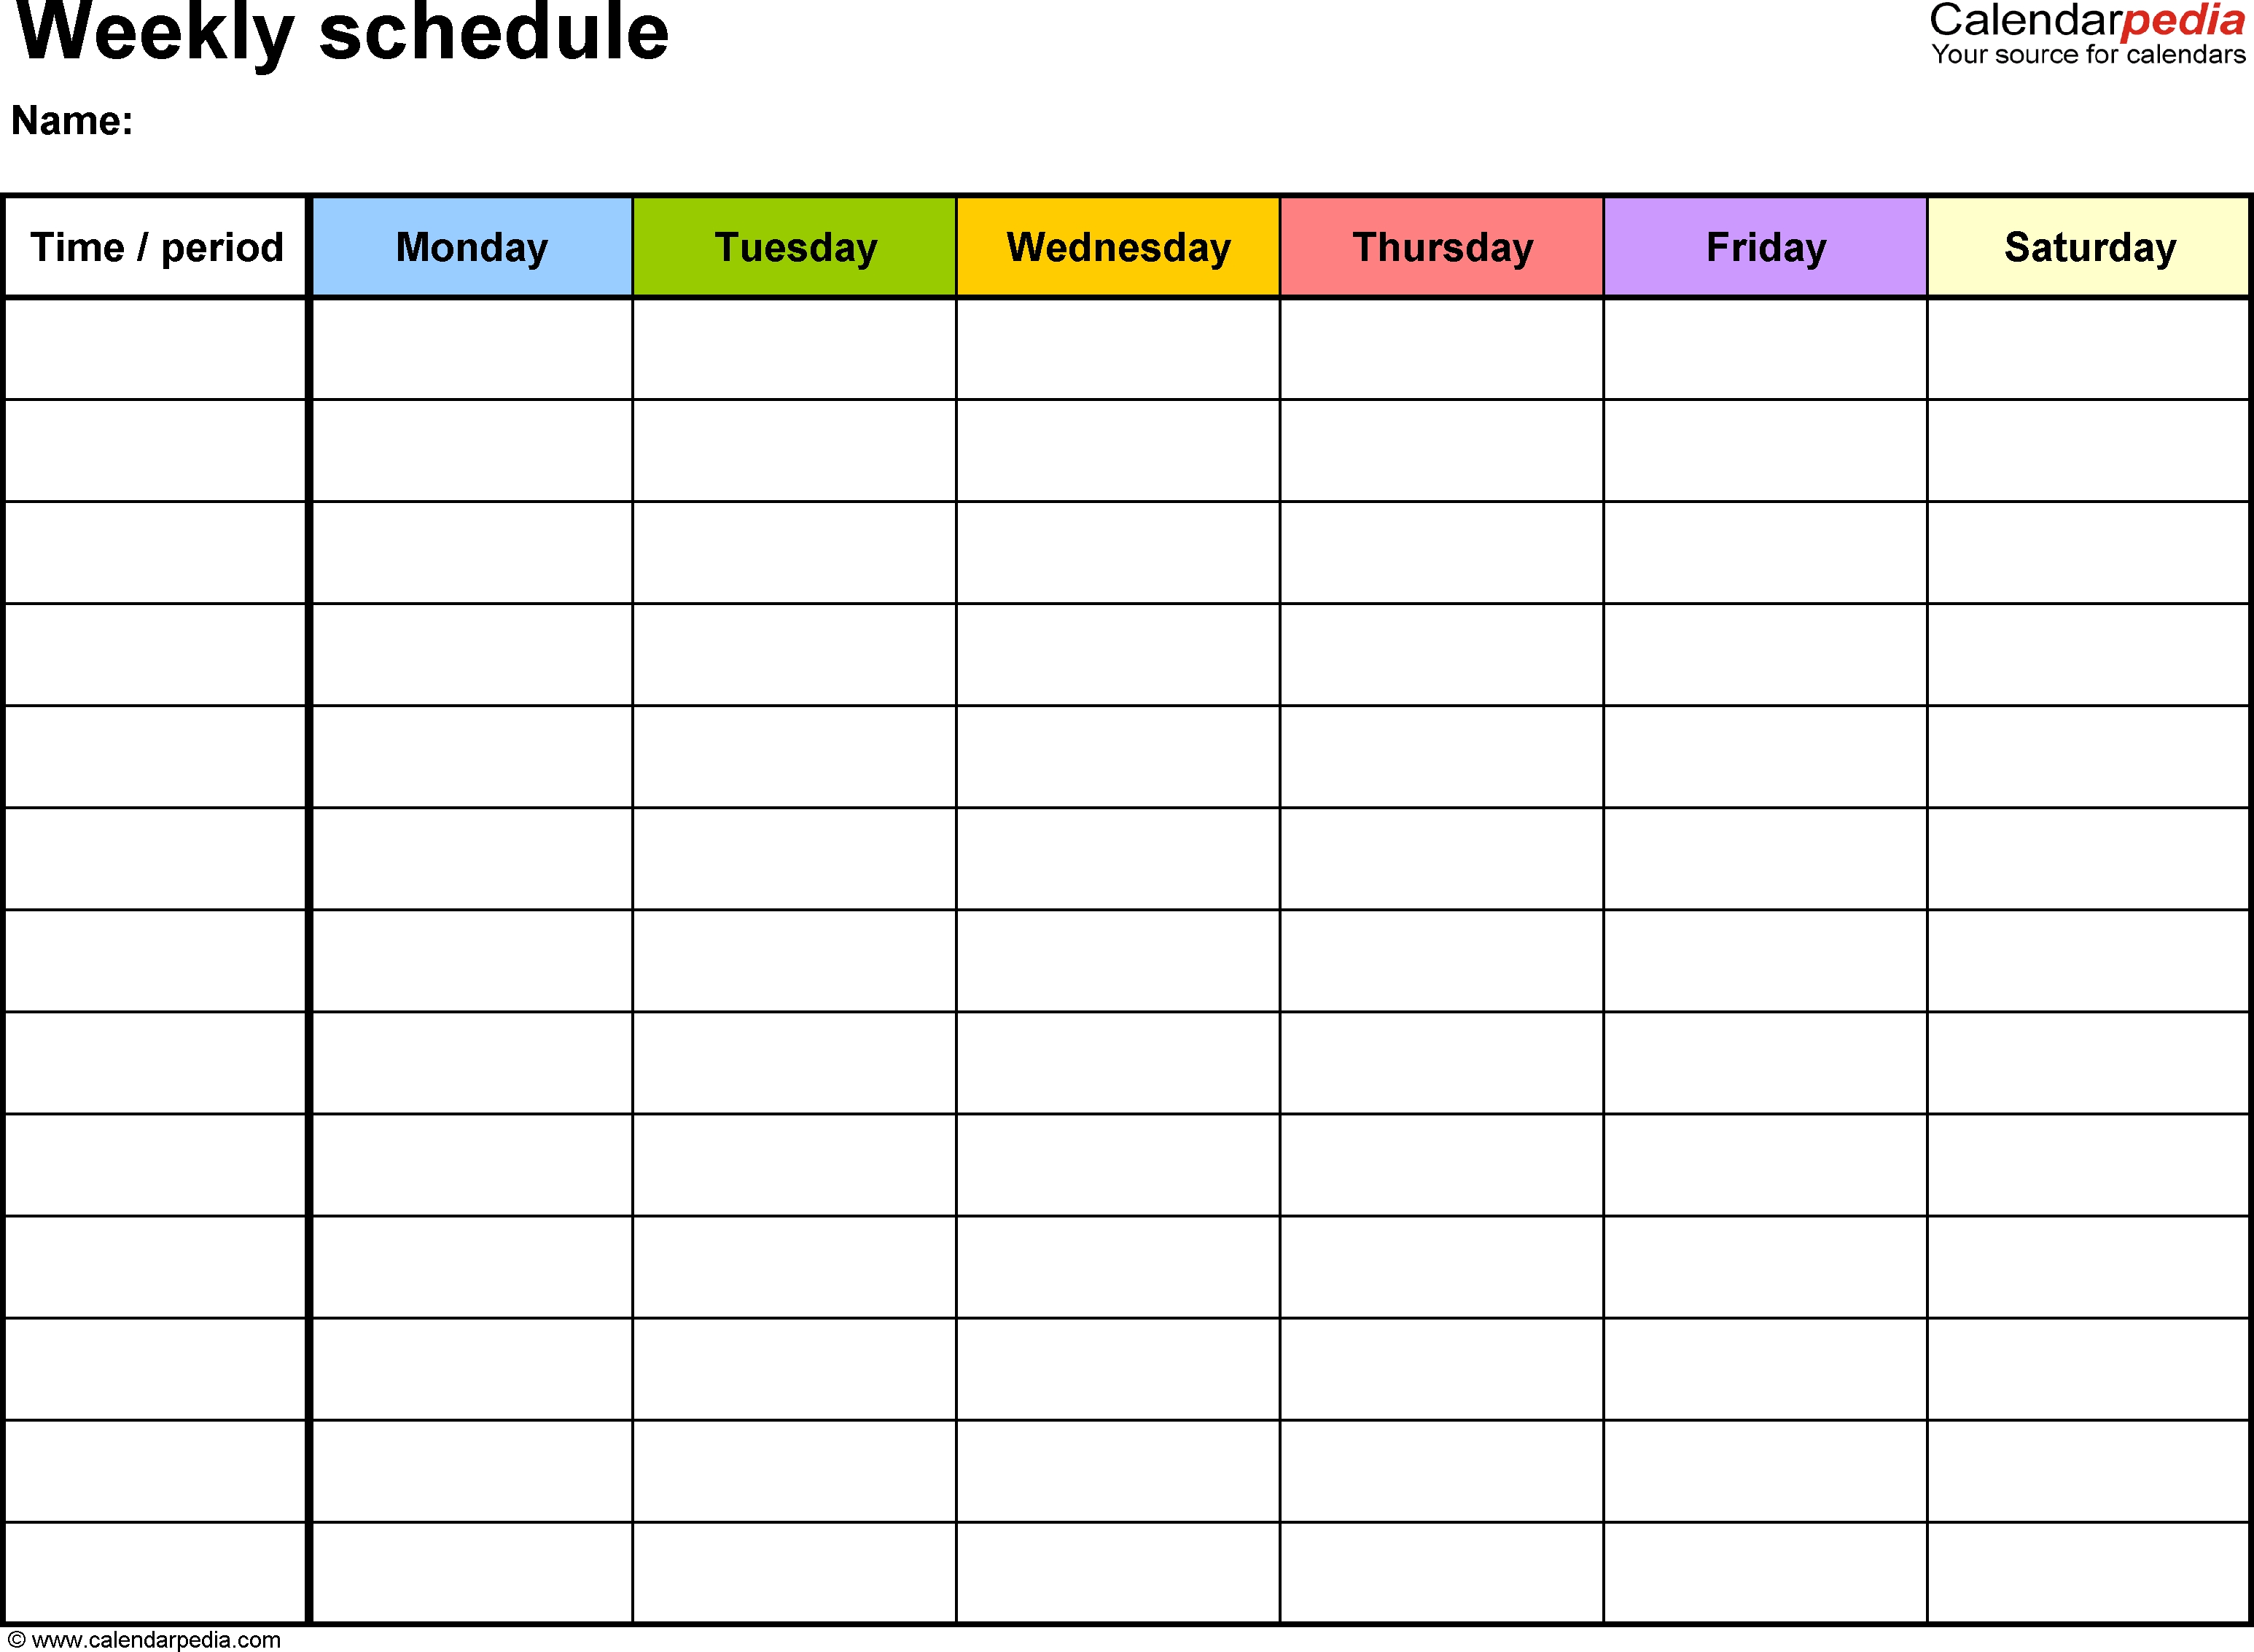 Free Ntable Schedule Calendar Template Weekly Templates For Word pertaining to Weekly Calendar Time Slots Printable